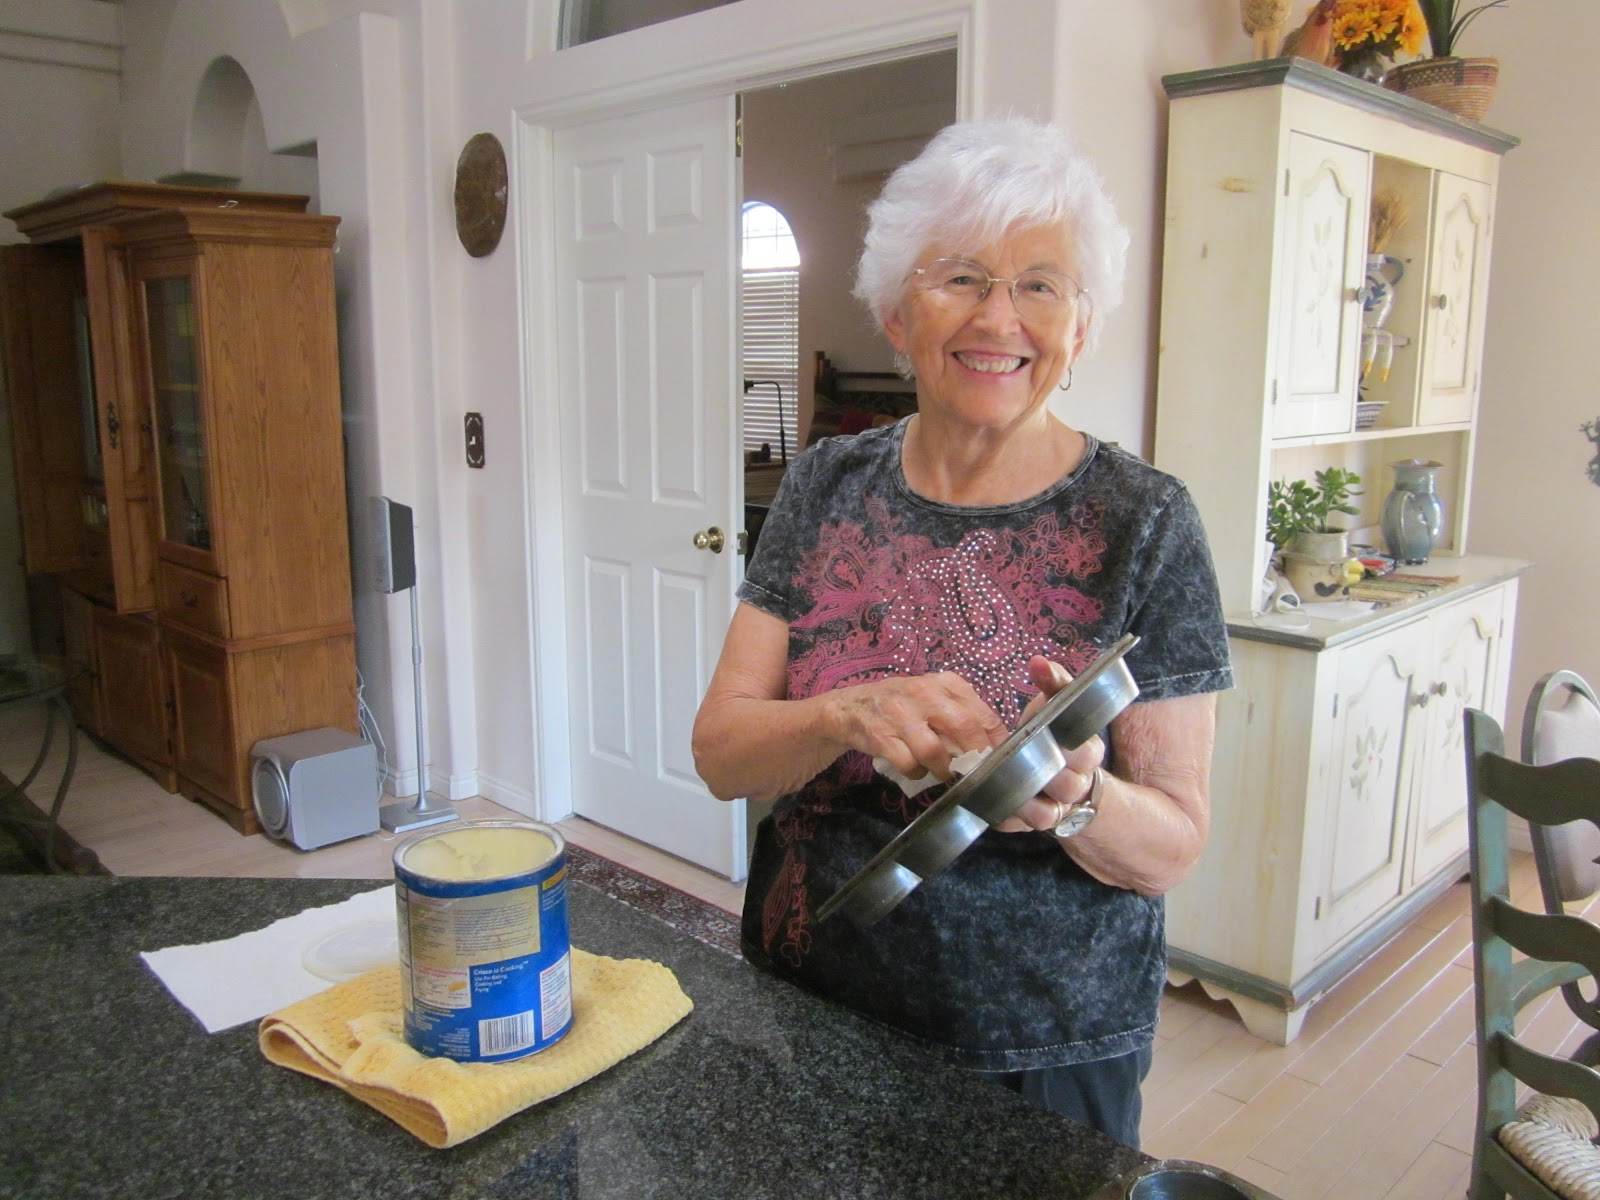 Dimples & Delights: More Muffins and My Grandma